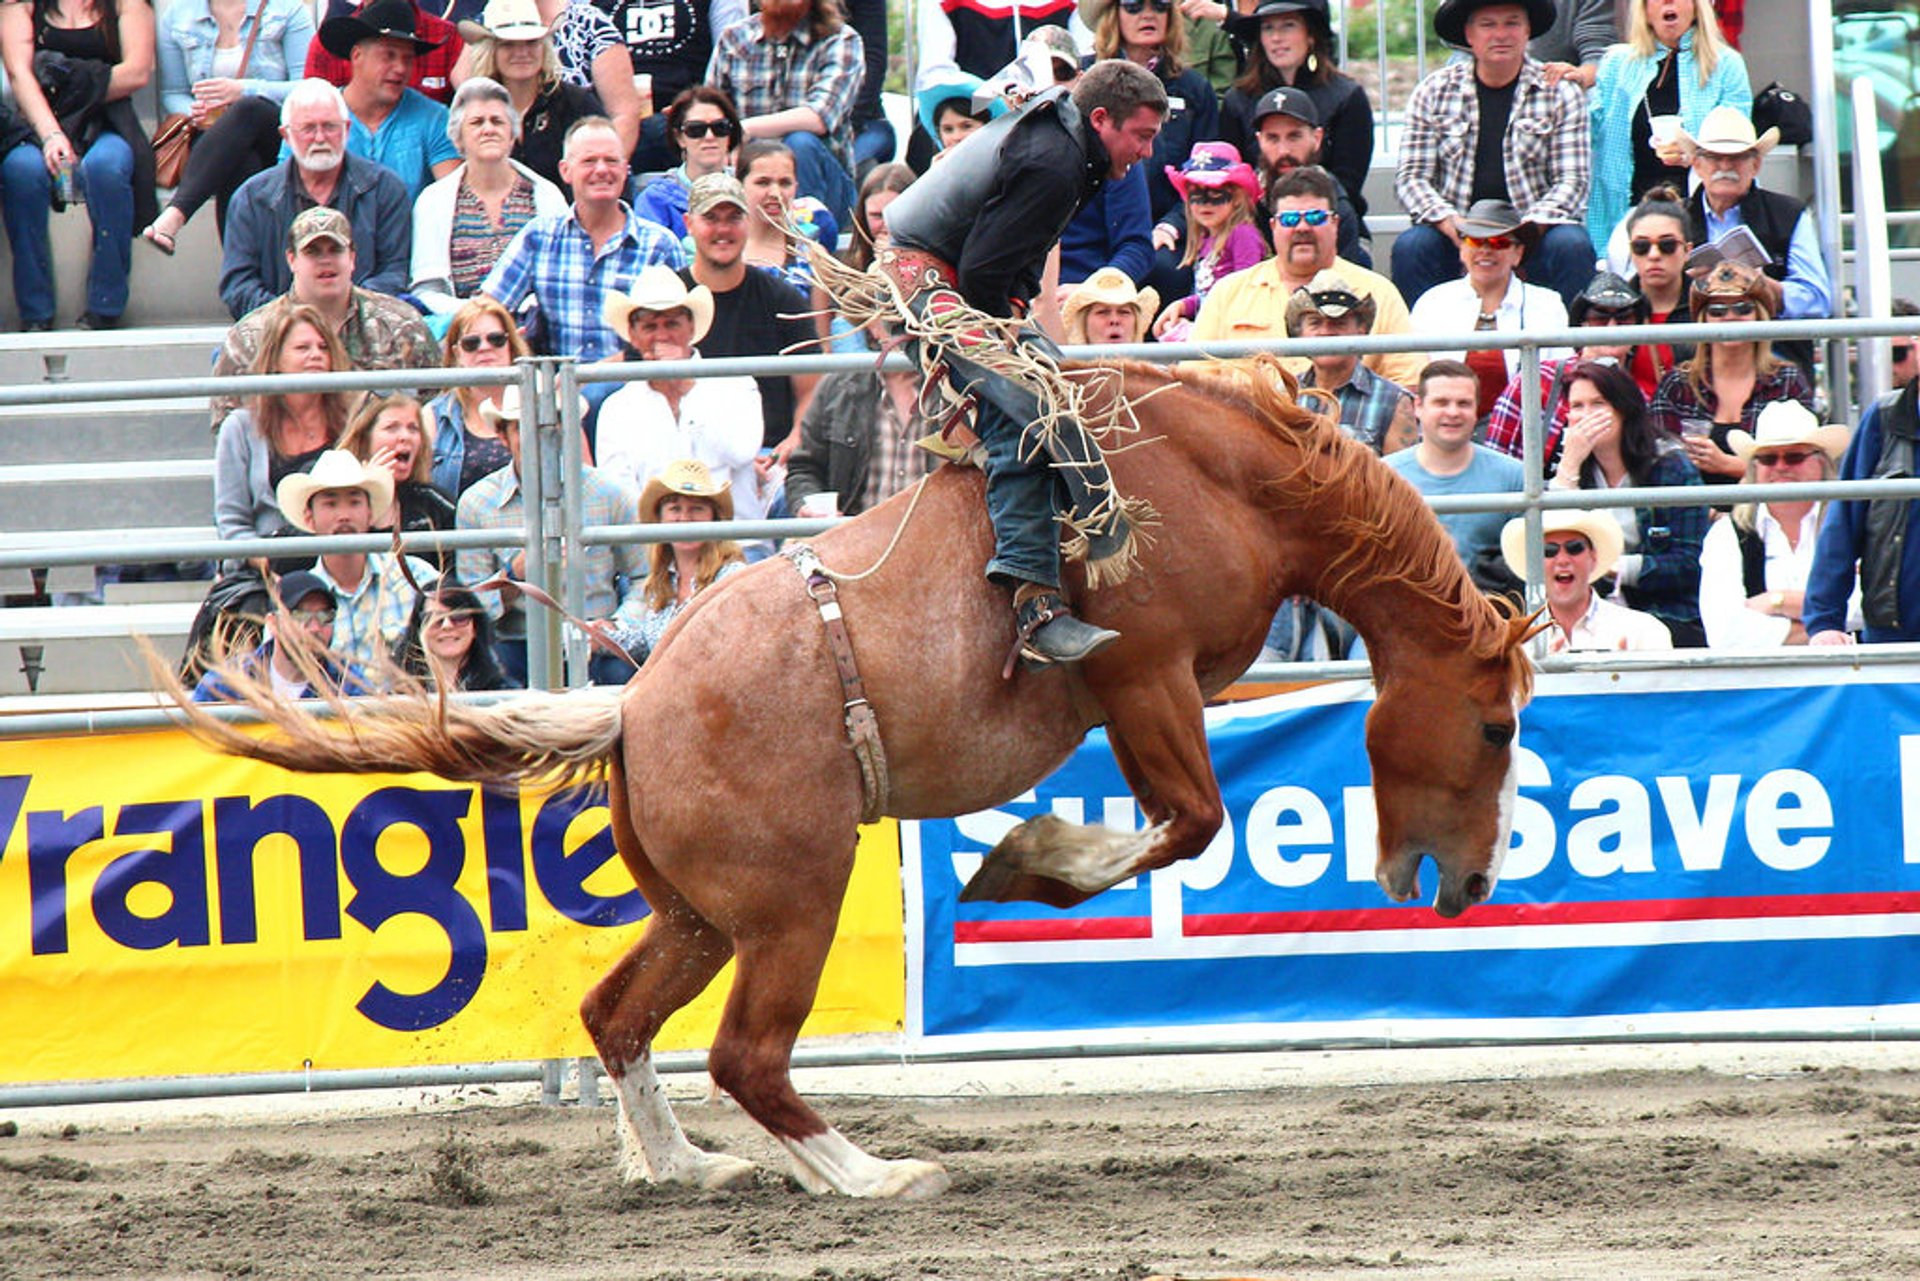 Cloverdale Rodeo and Country Fair in Vancouver - Best Season 2020